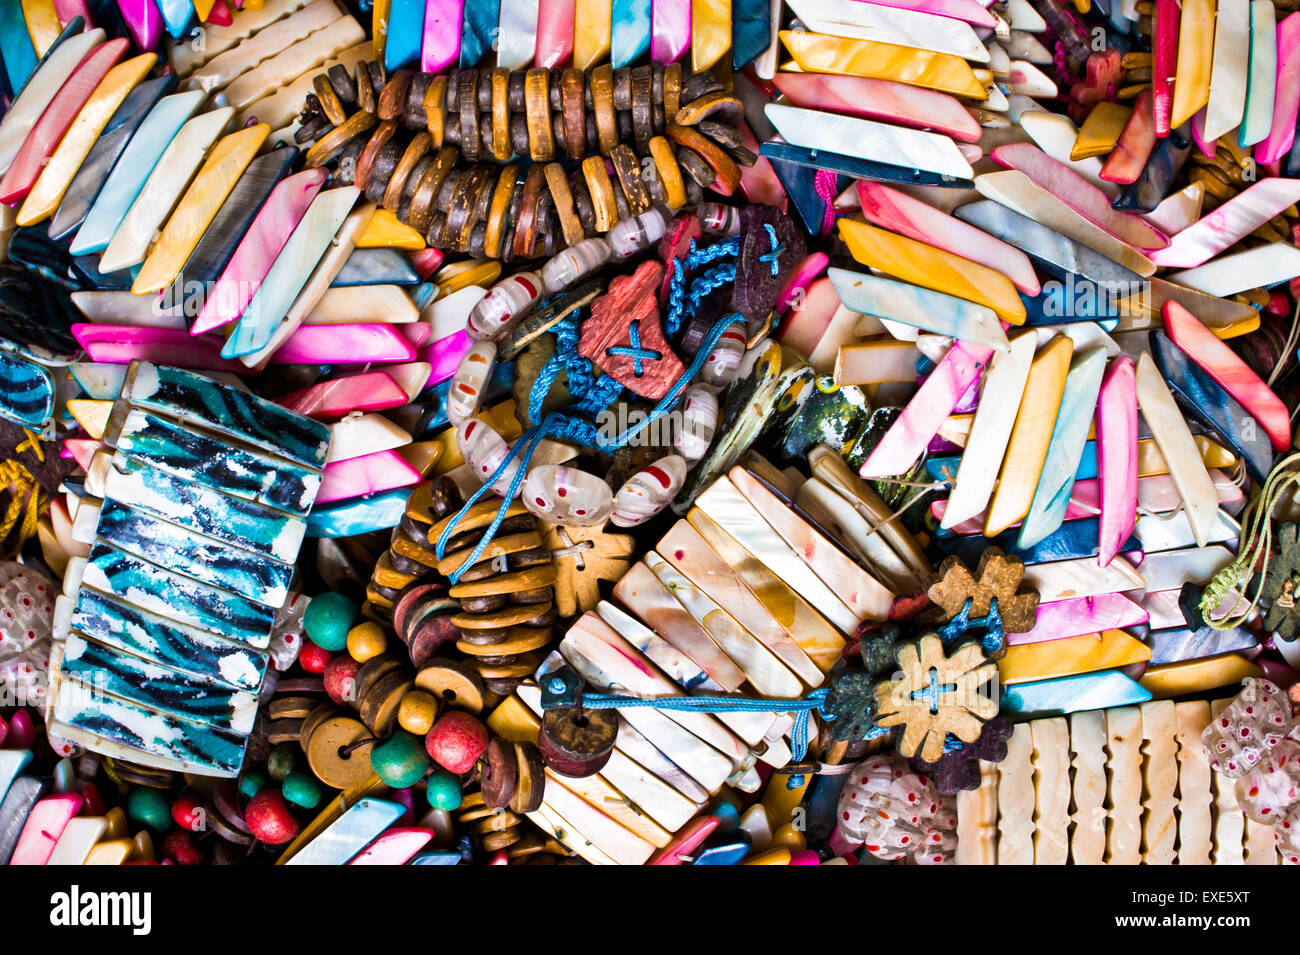 Souvenir bracelets and pendants at a Turkish market - Stock Image